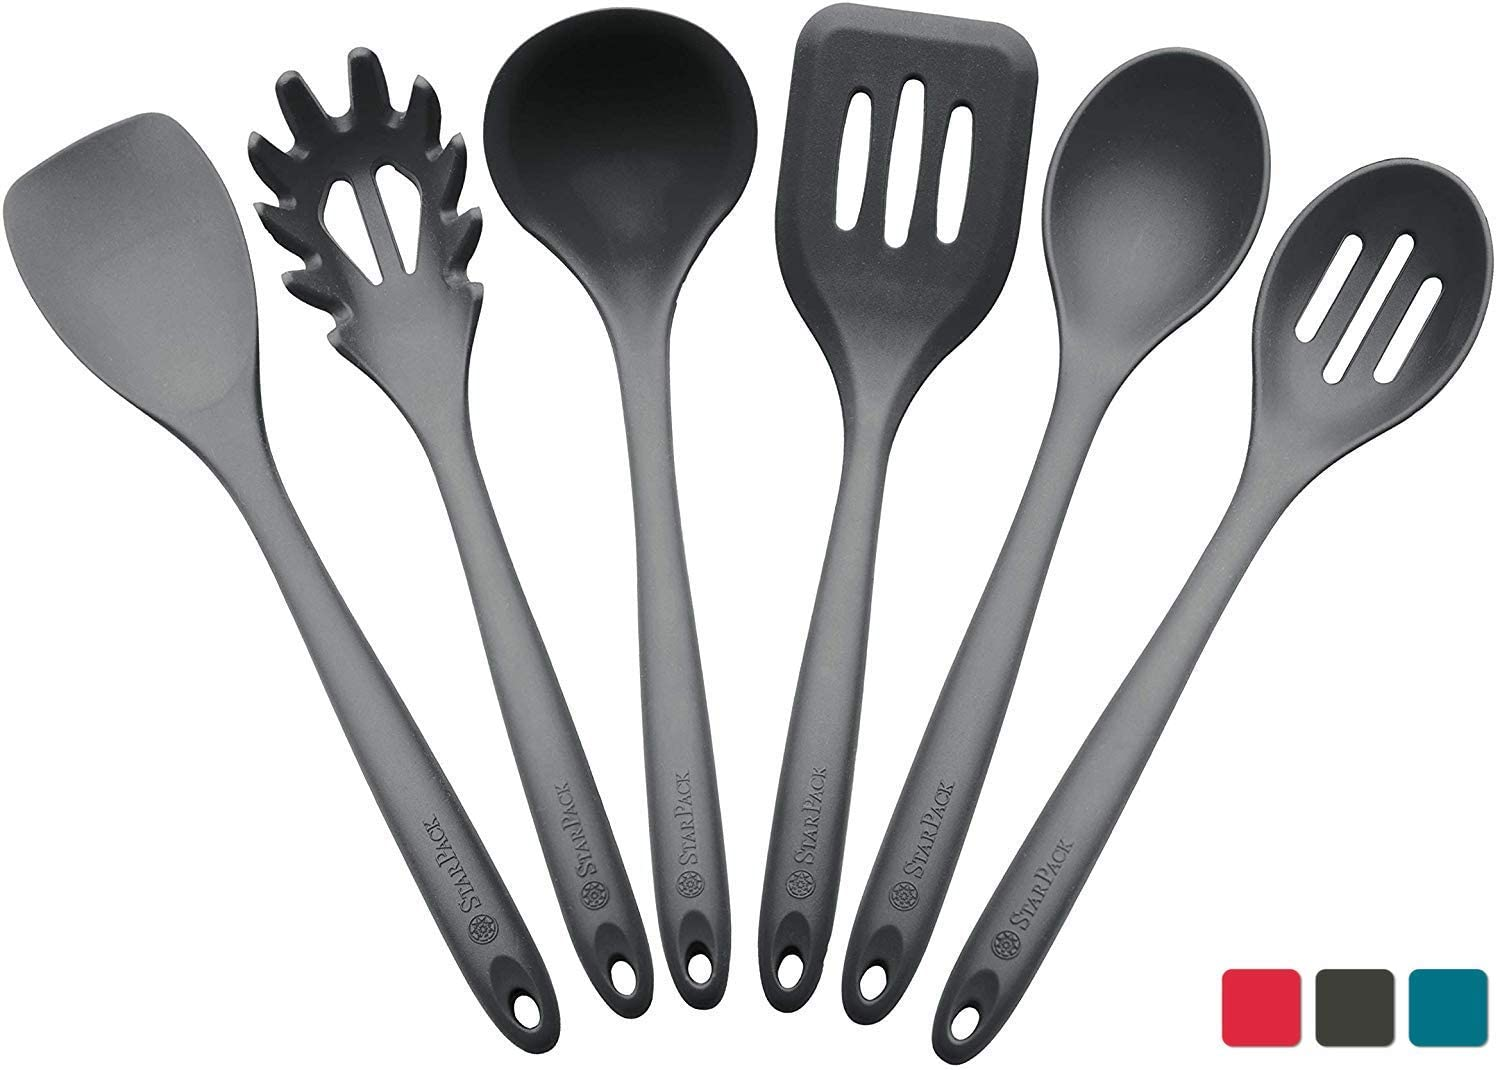 StarPack Basics XL Silicone Kitchen Utensil Set (6 Piece), High Heat Resistant to 480°F, Hygienic One Piece Design